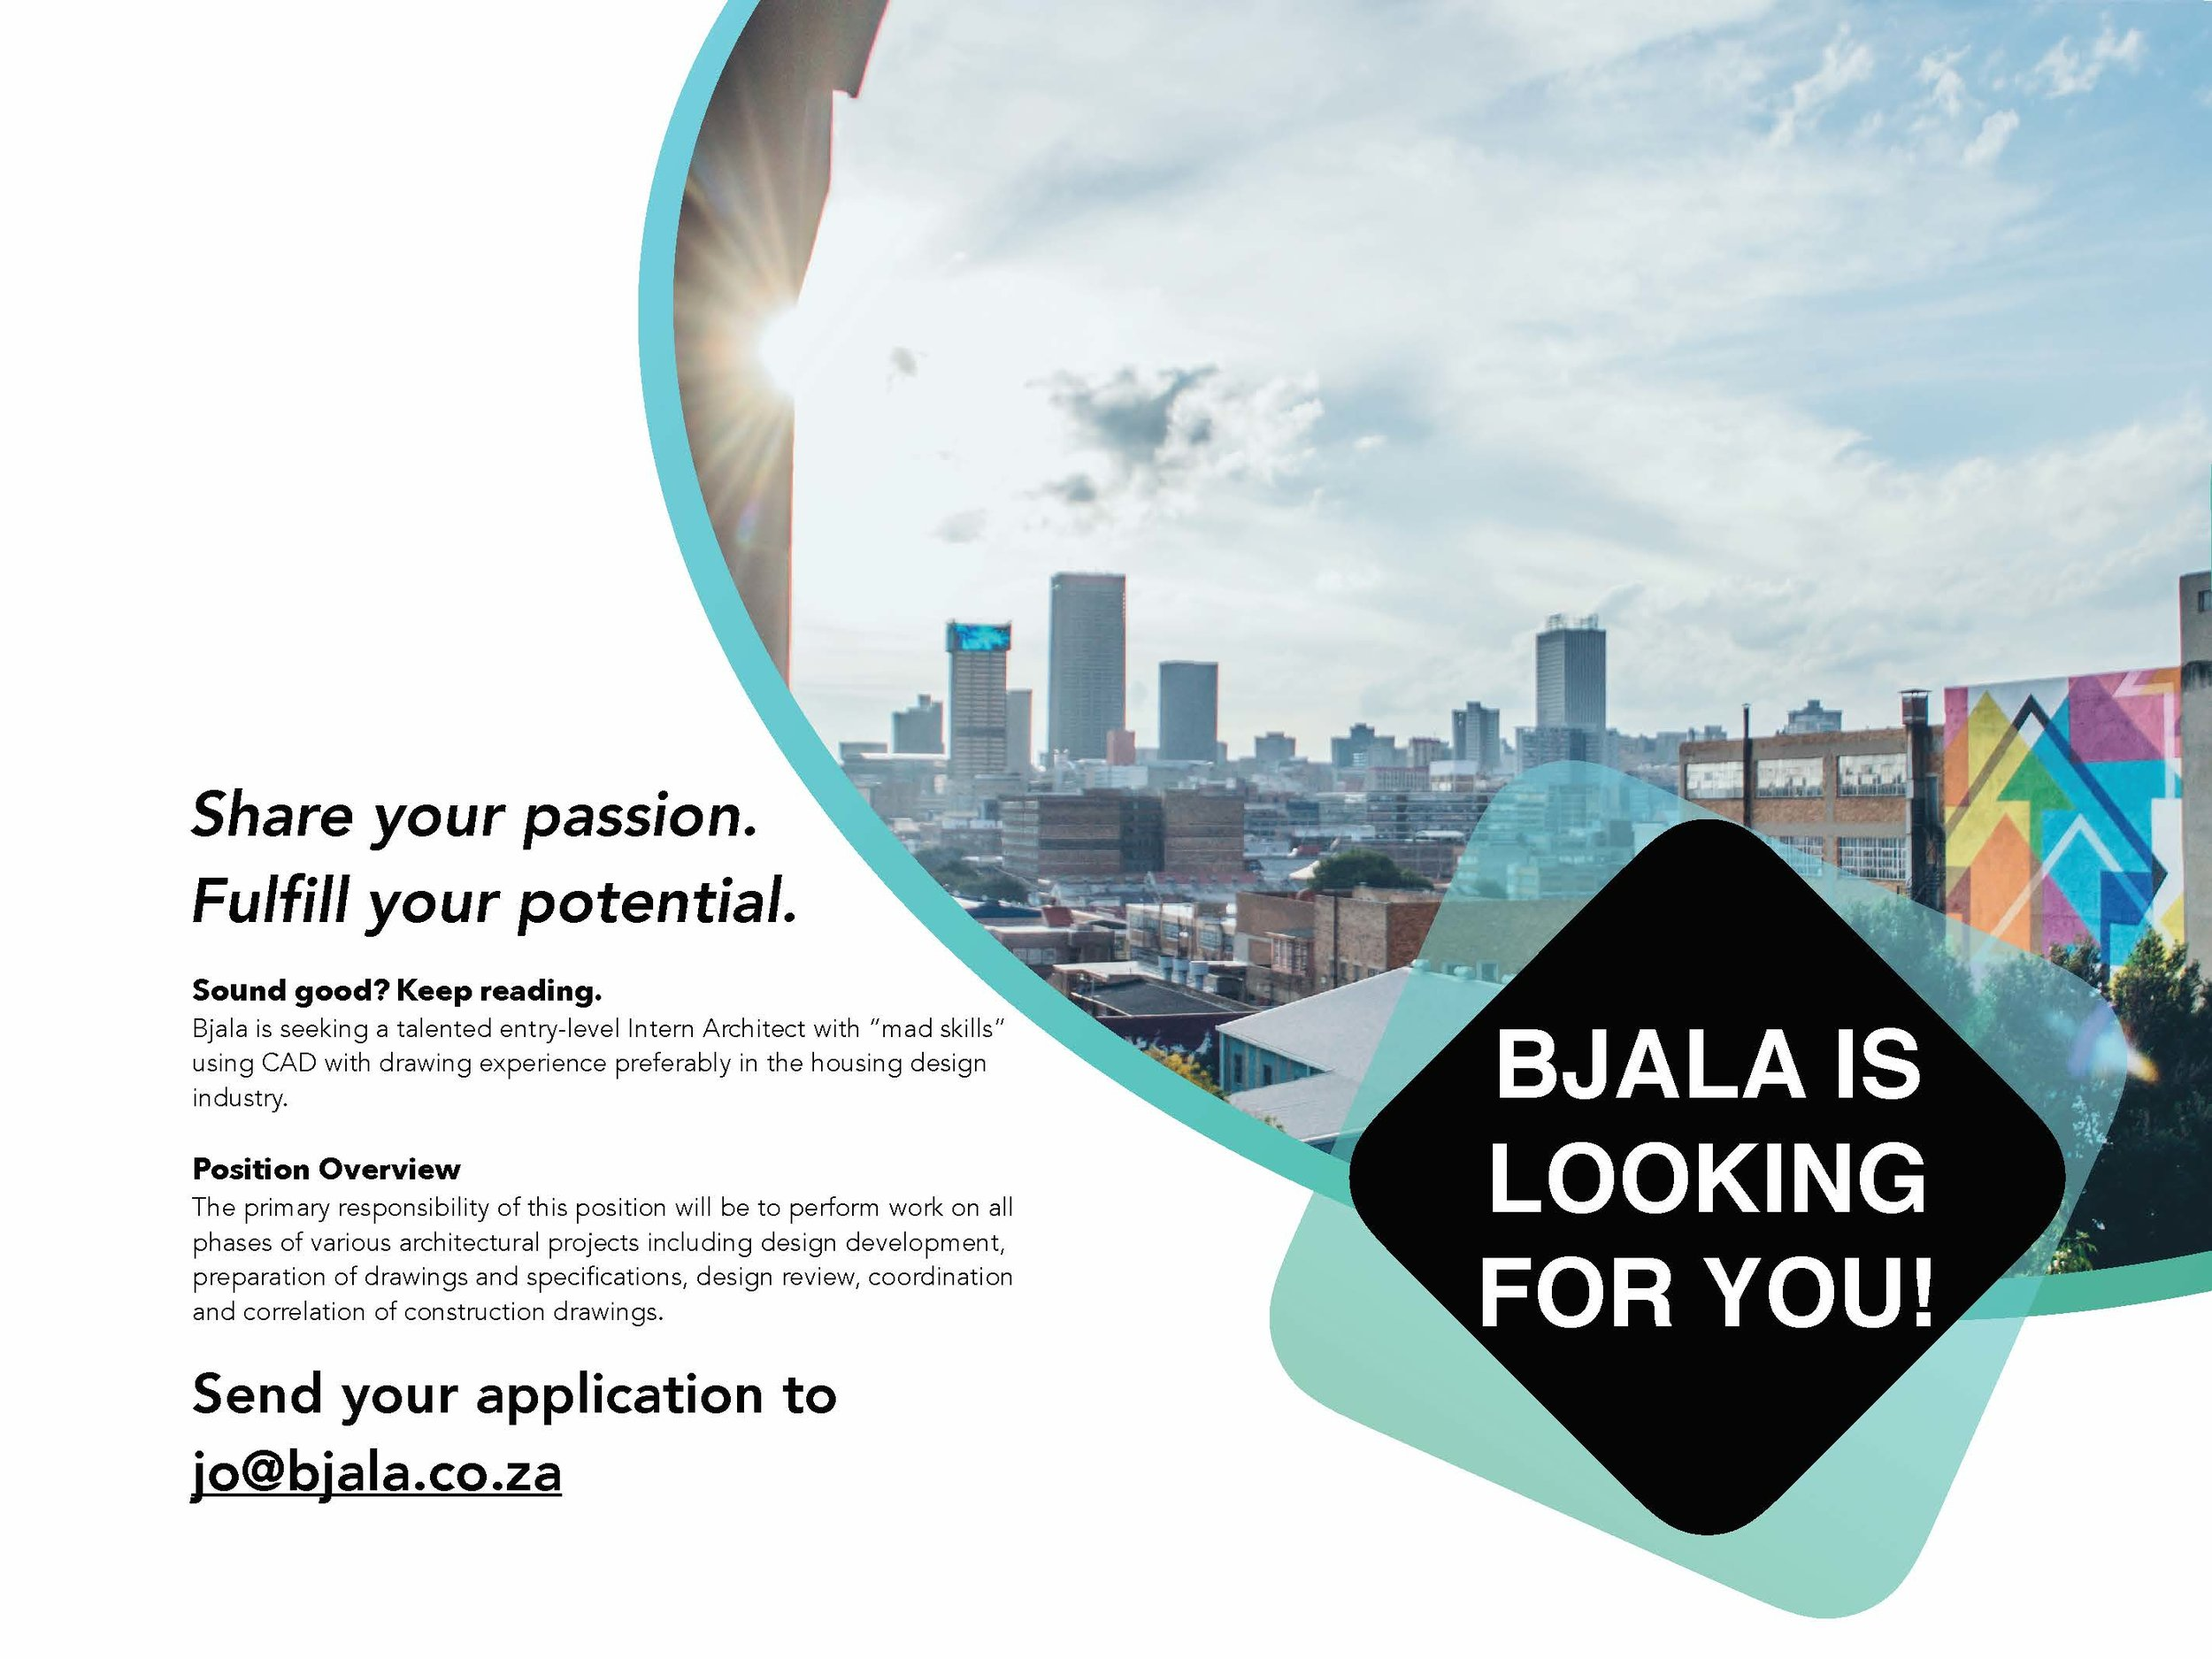 Bjala is looking for you.jpg